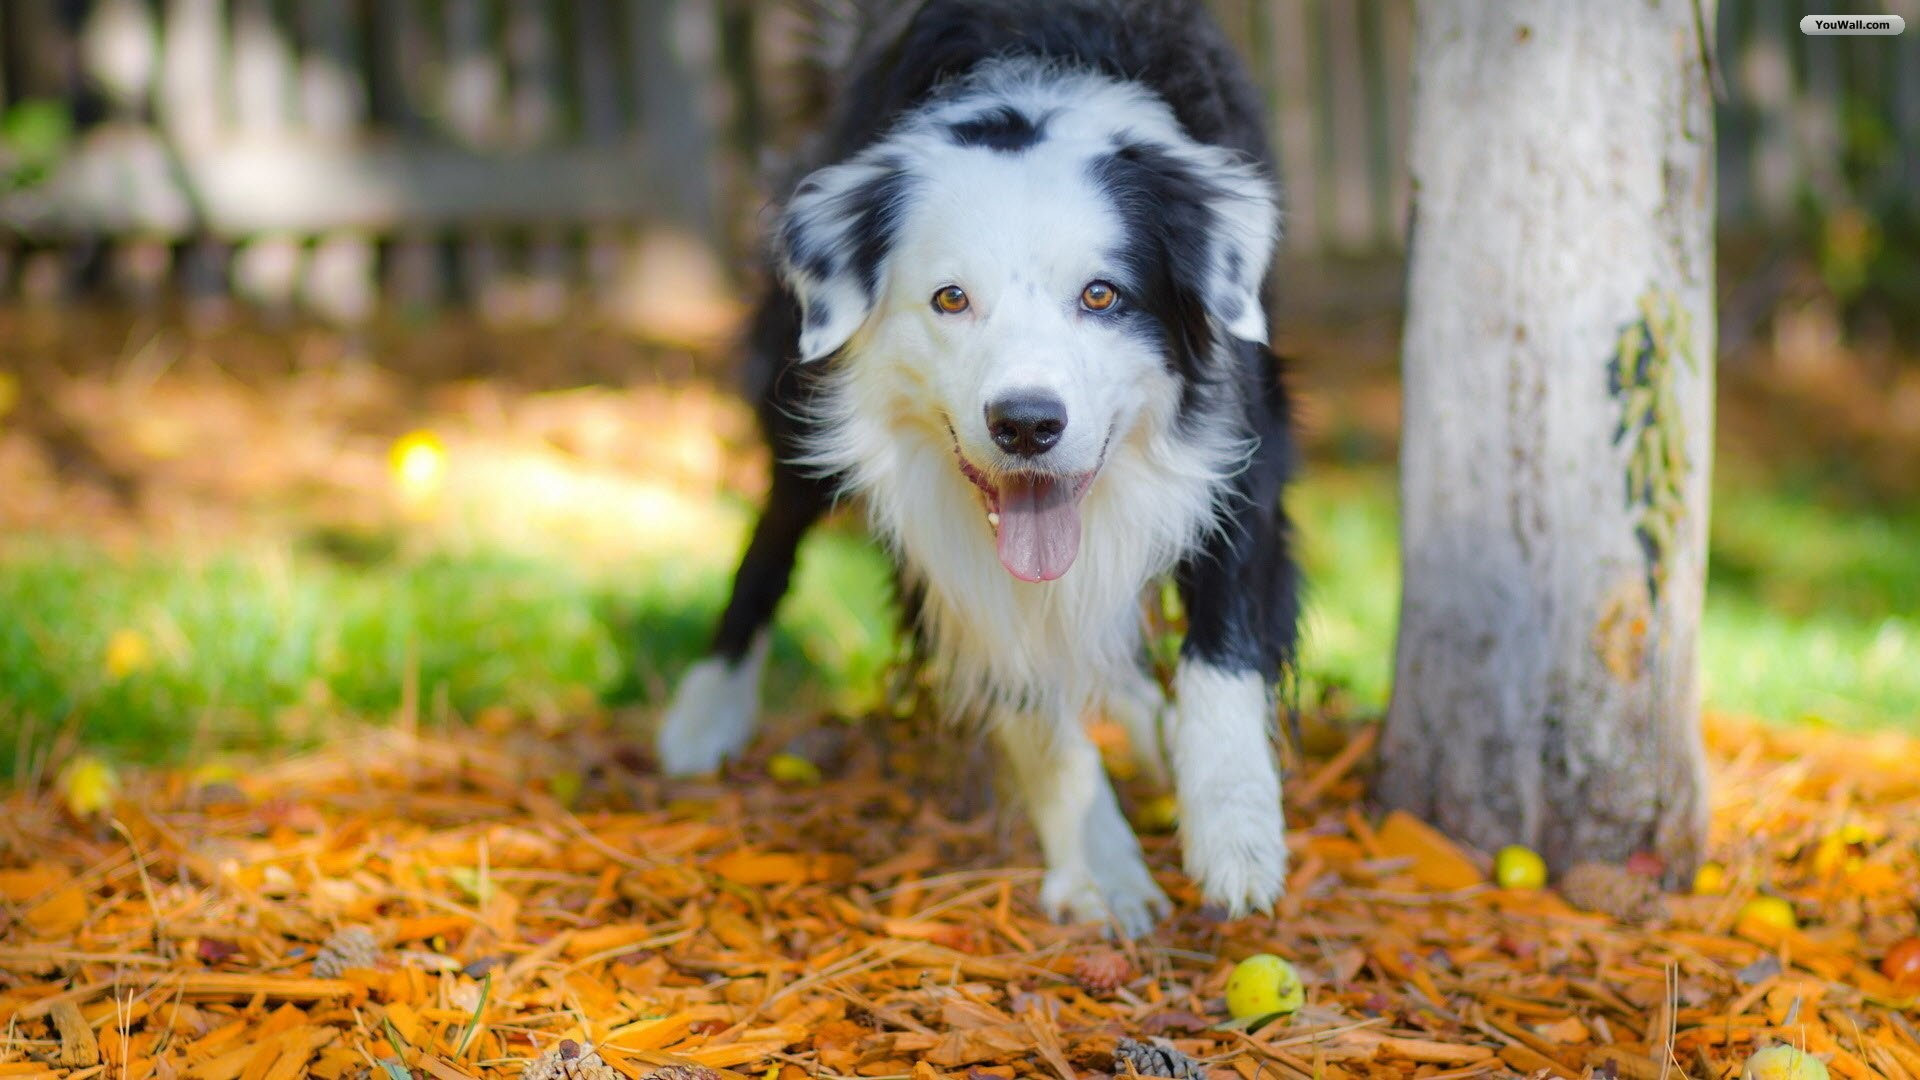 cute puppies dogs pics Description Lovely Puppy Dog Wallpaper